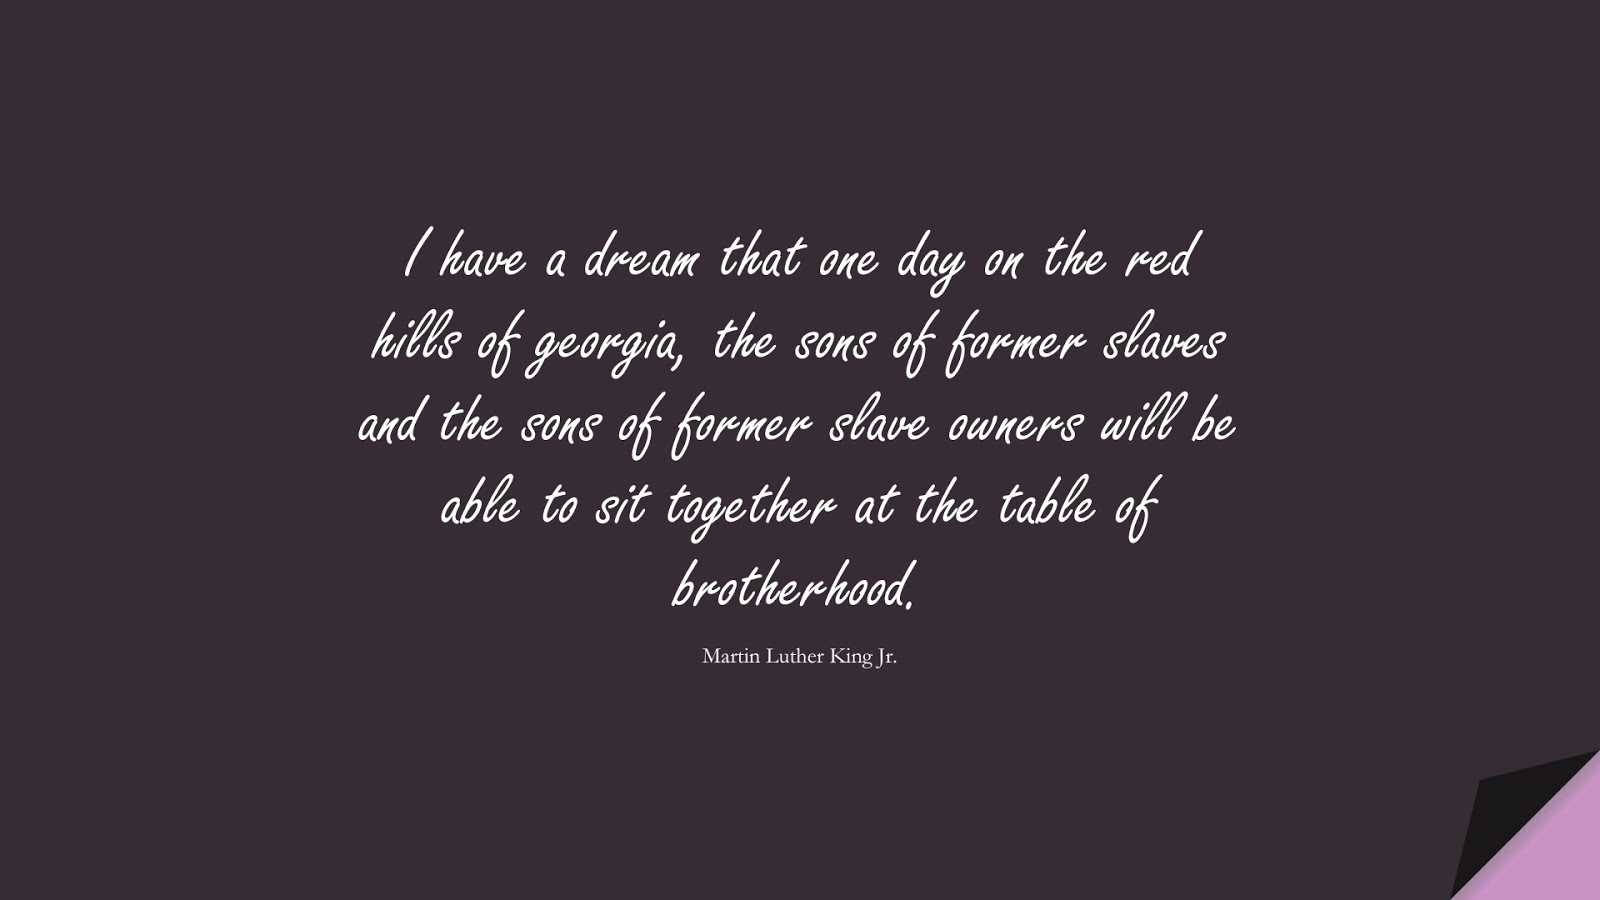 I have a dream that one day on the red hills of georgia, the sons of former slaves and the sons of former slave owners will be able to sit together at the table of brotherhood. (Martin Luther King Jr.);  #MartinLutherKingJrQuotes